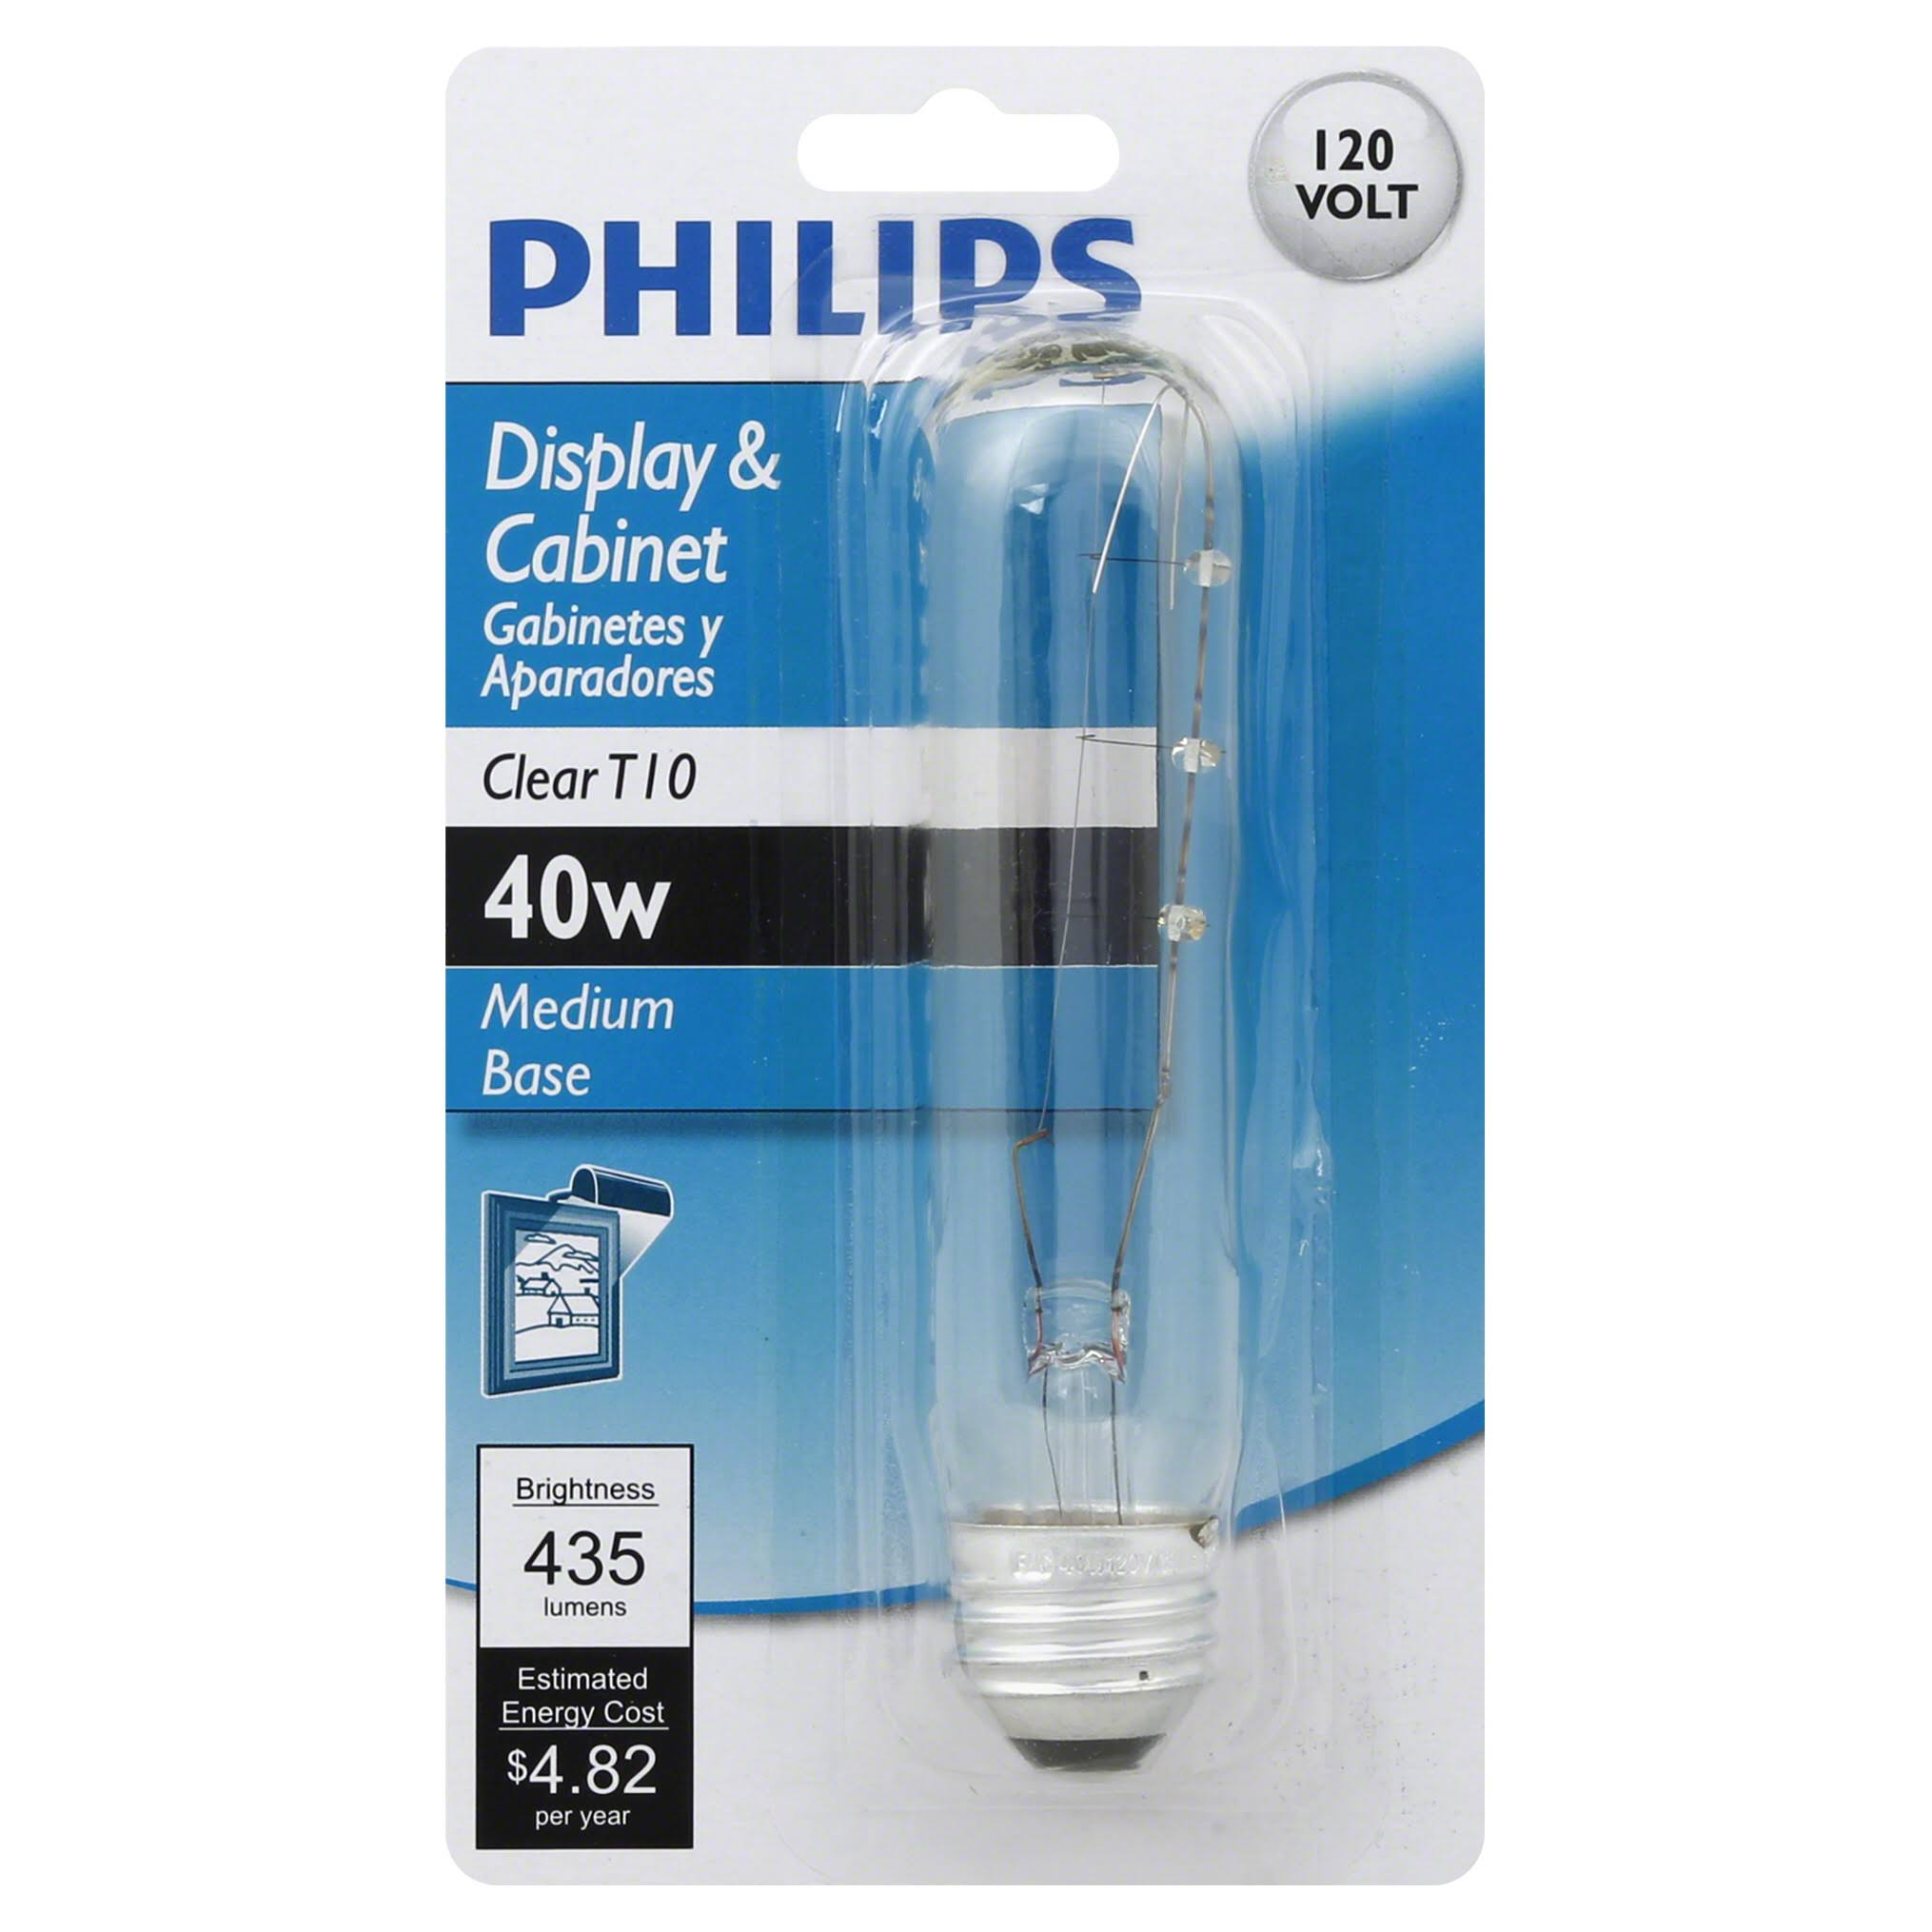 Philips Display And Cabinet Light Bulb - Clear T10, 40W, Medium Base, 120V, 435 Lumens